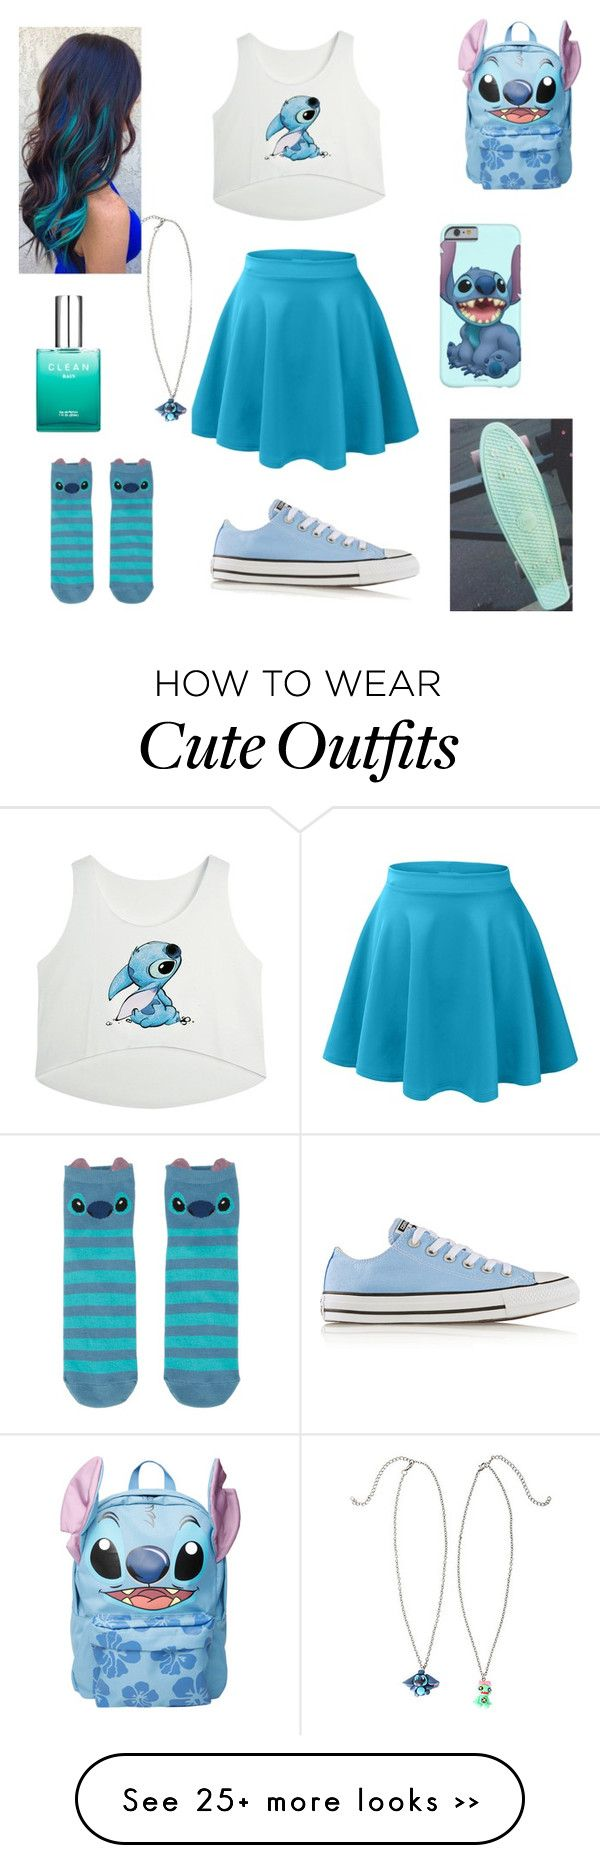 stitch outfit by xxsondraxx on polyvore featuring converse disney and clean cute outfits. Black Bedroom Furniture Sets. Home Design Ideas